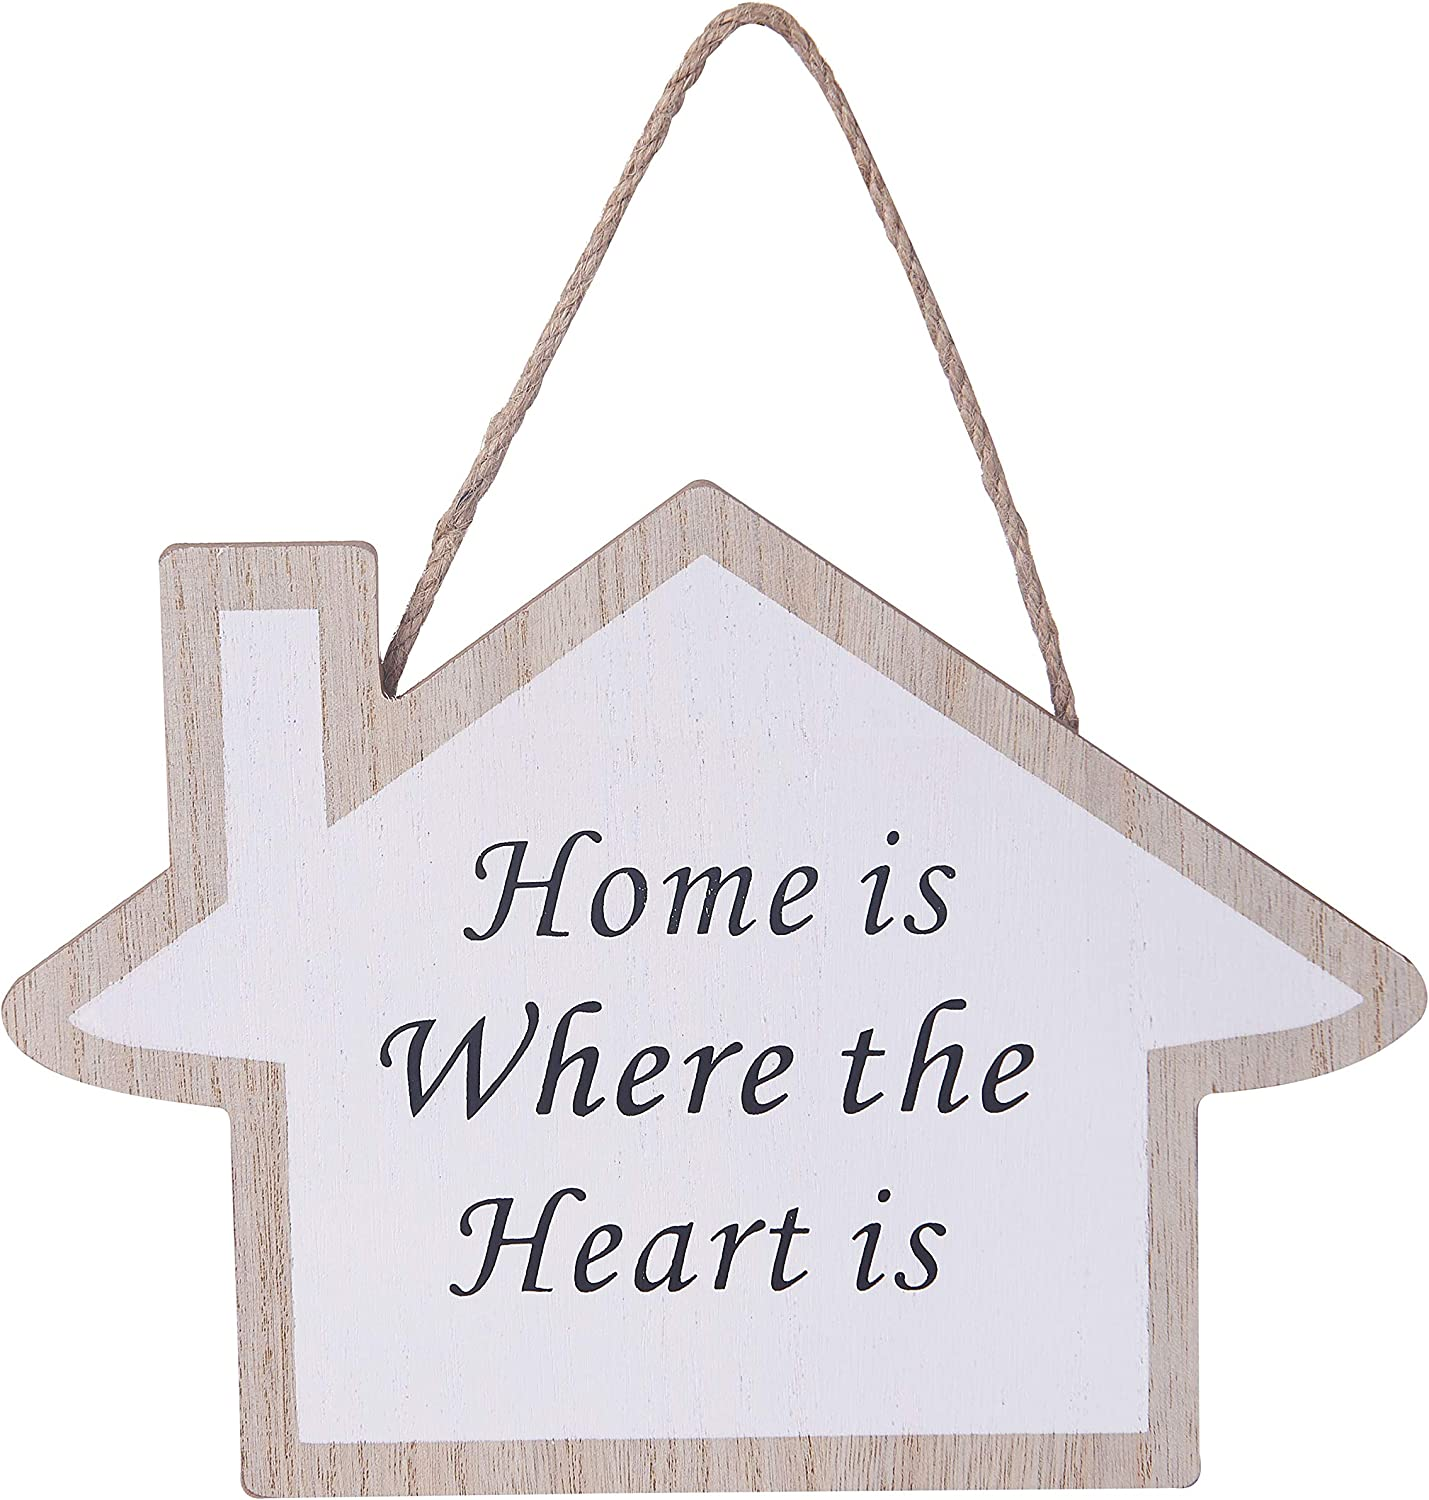 9.6x6.8 inches Jute Rope Hanging Sweet House Welcome Sign Plaque for Home Wall Decor (Home is Where The Heart is)